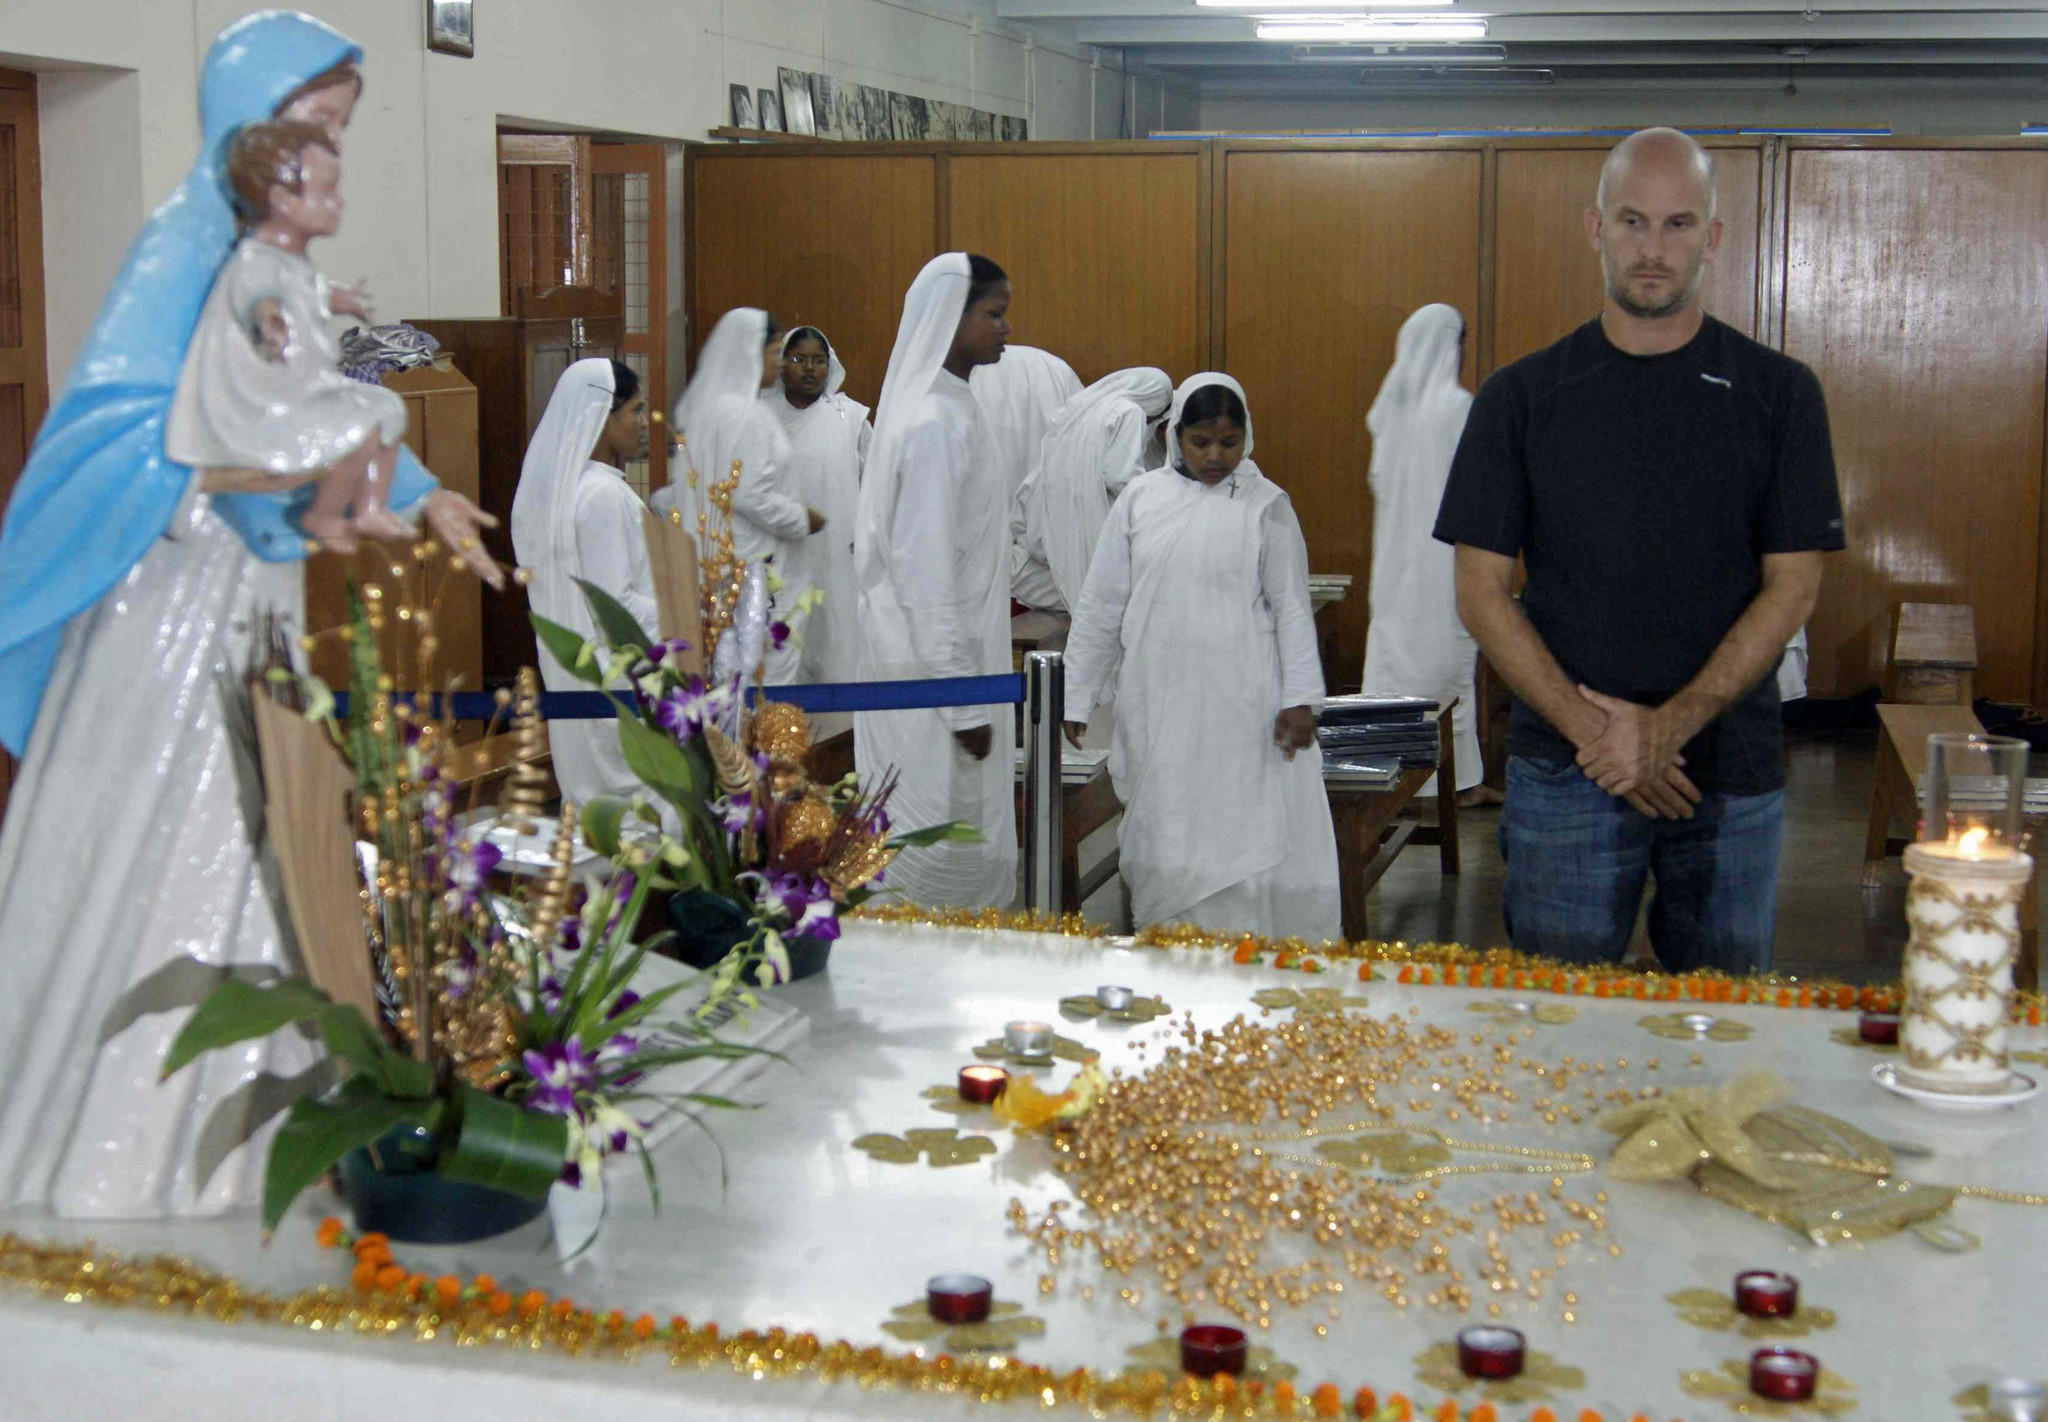 Leon Logothetis at Mother Teresa's tomb in Kolkata, India.